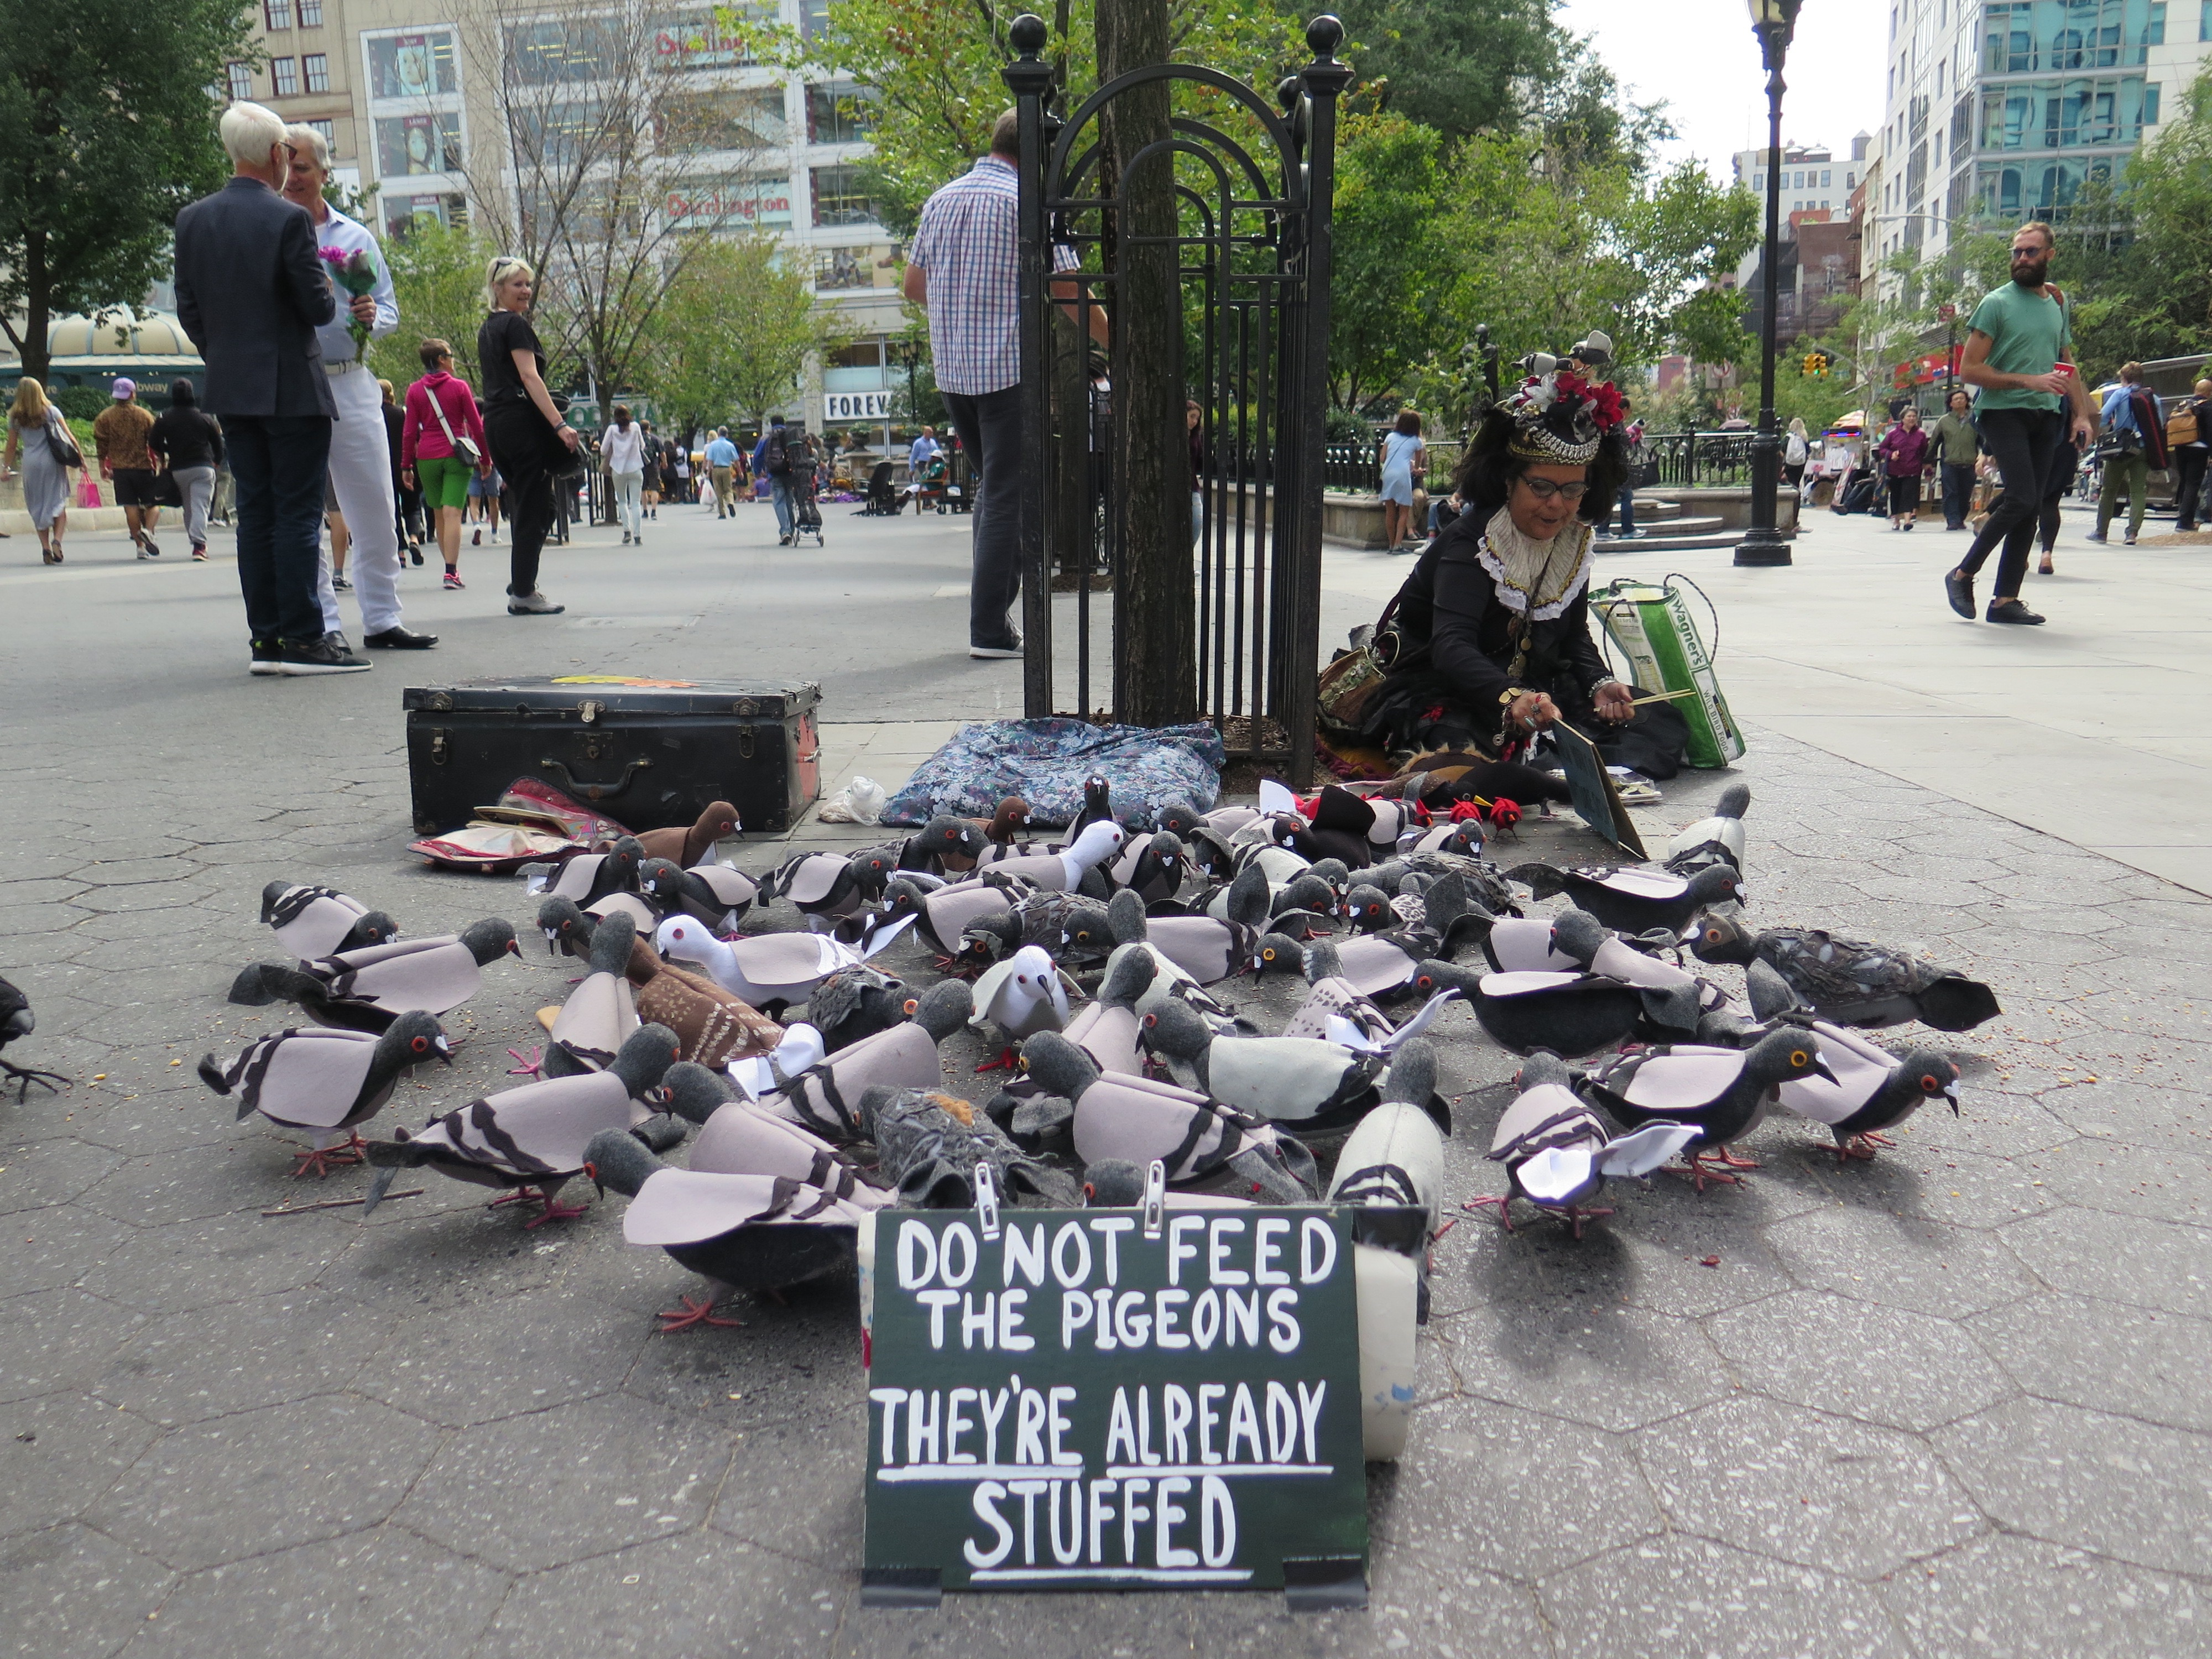 What to feed the pigeons